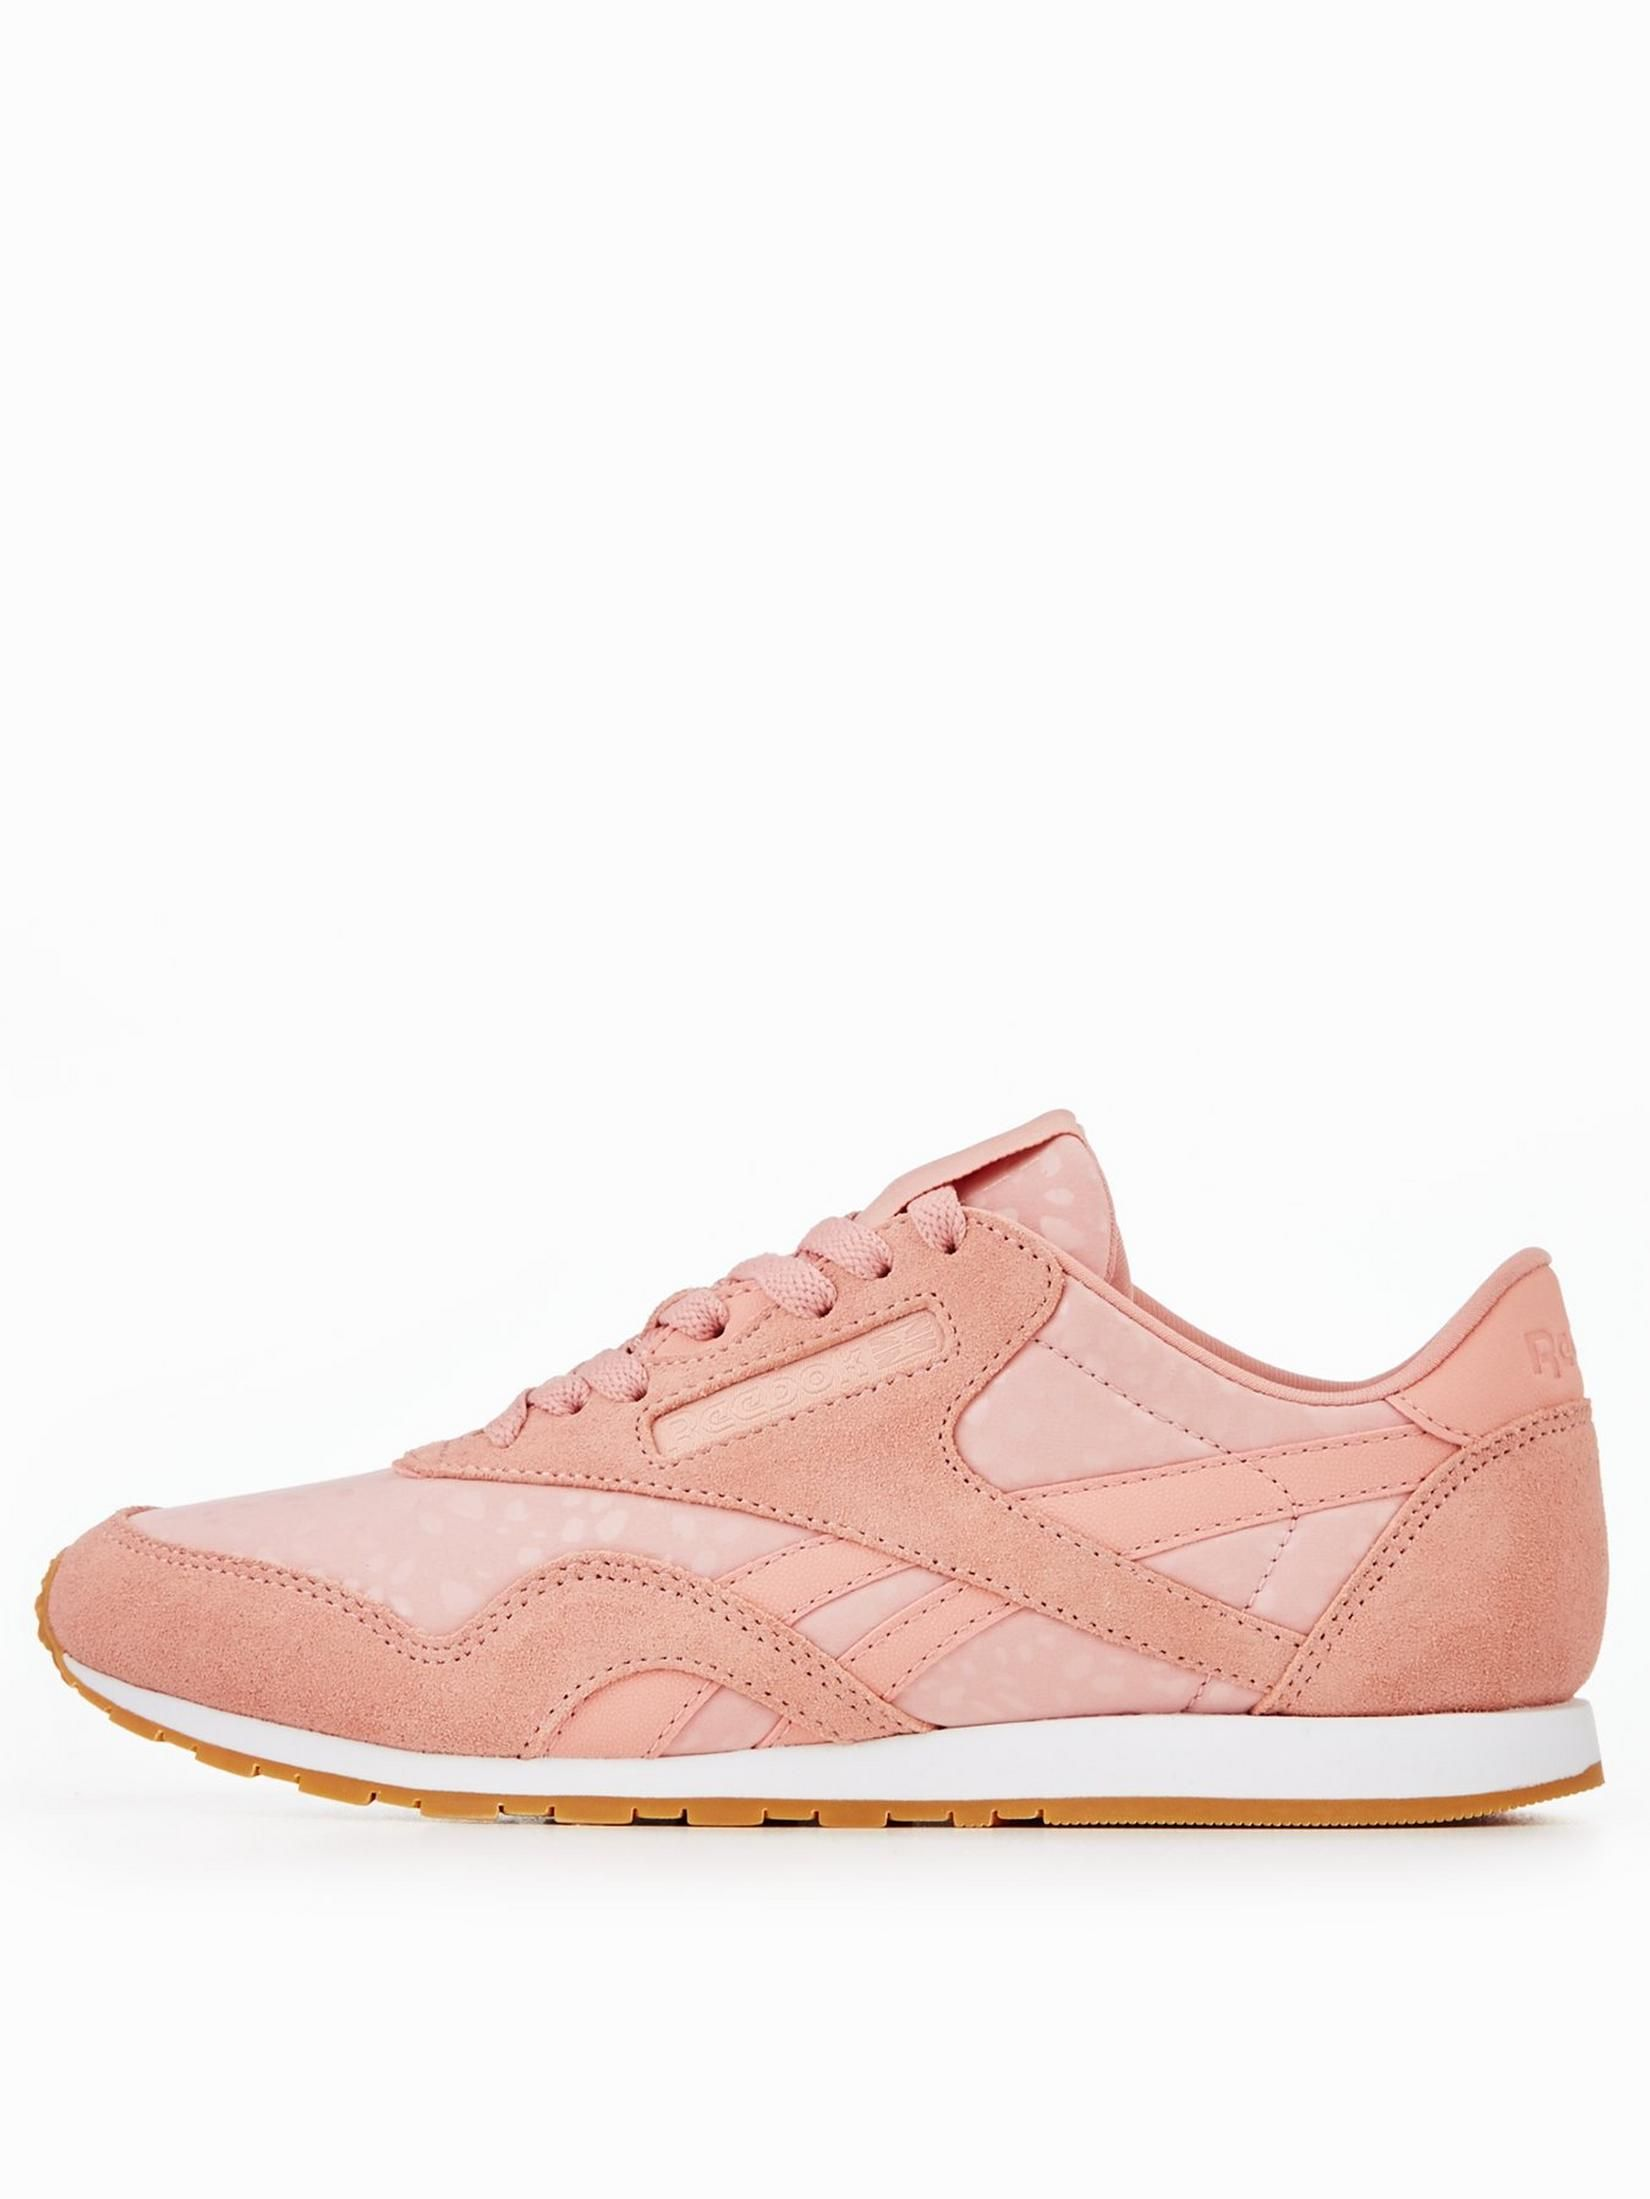 a9cf33c8a725c Reebok Classic Nylon Slim Text Lux Elevate your athleisure looks with the Classic  Nylon Slim Text